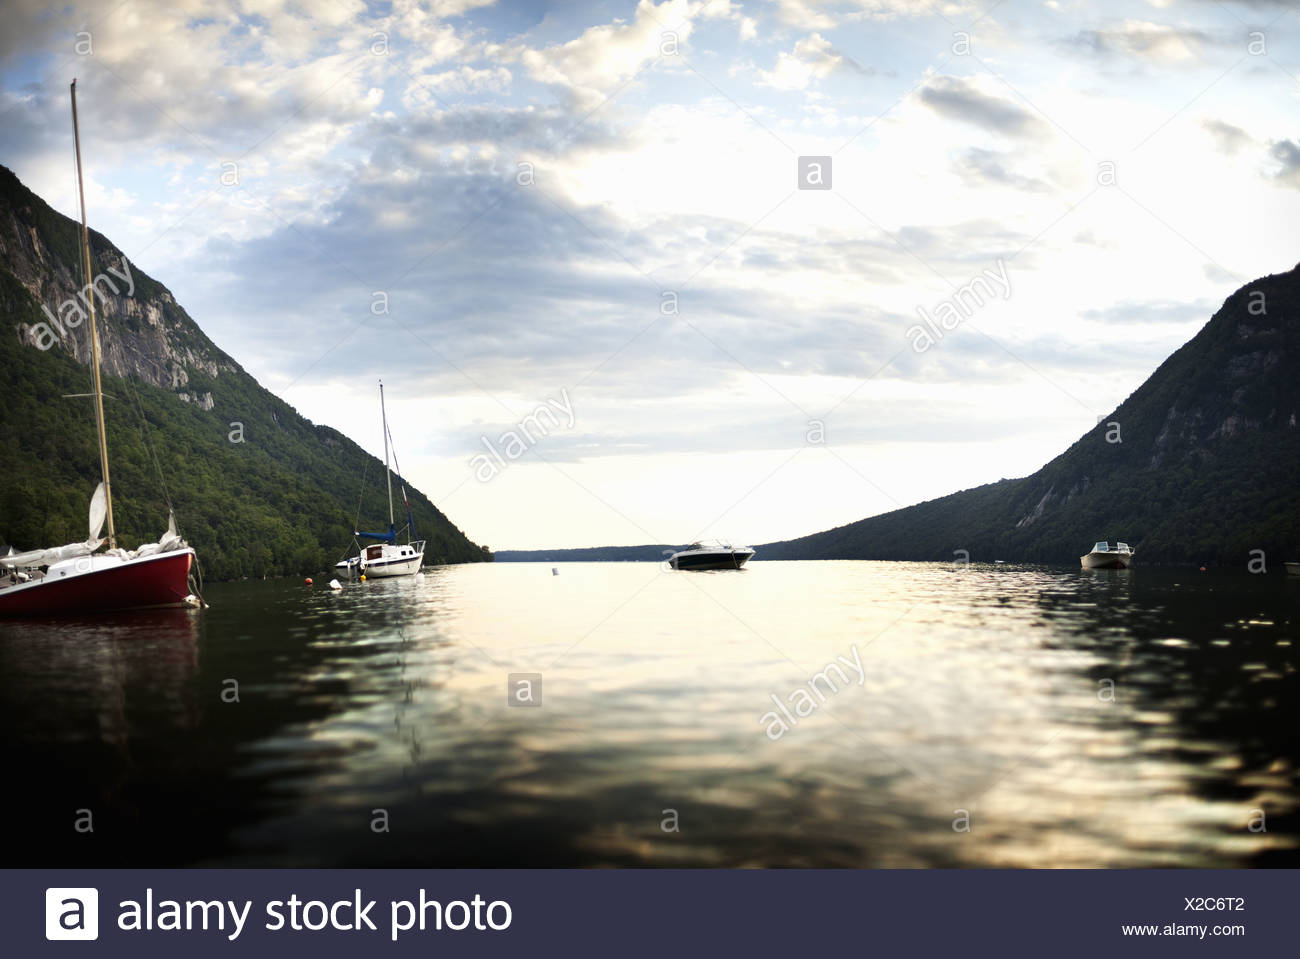 USA Two boats yacht and motorboat moored on calm lake - Stock Image